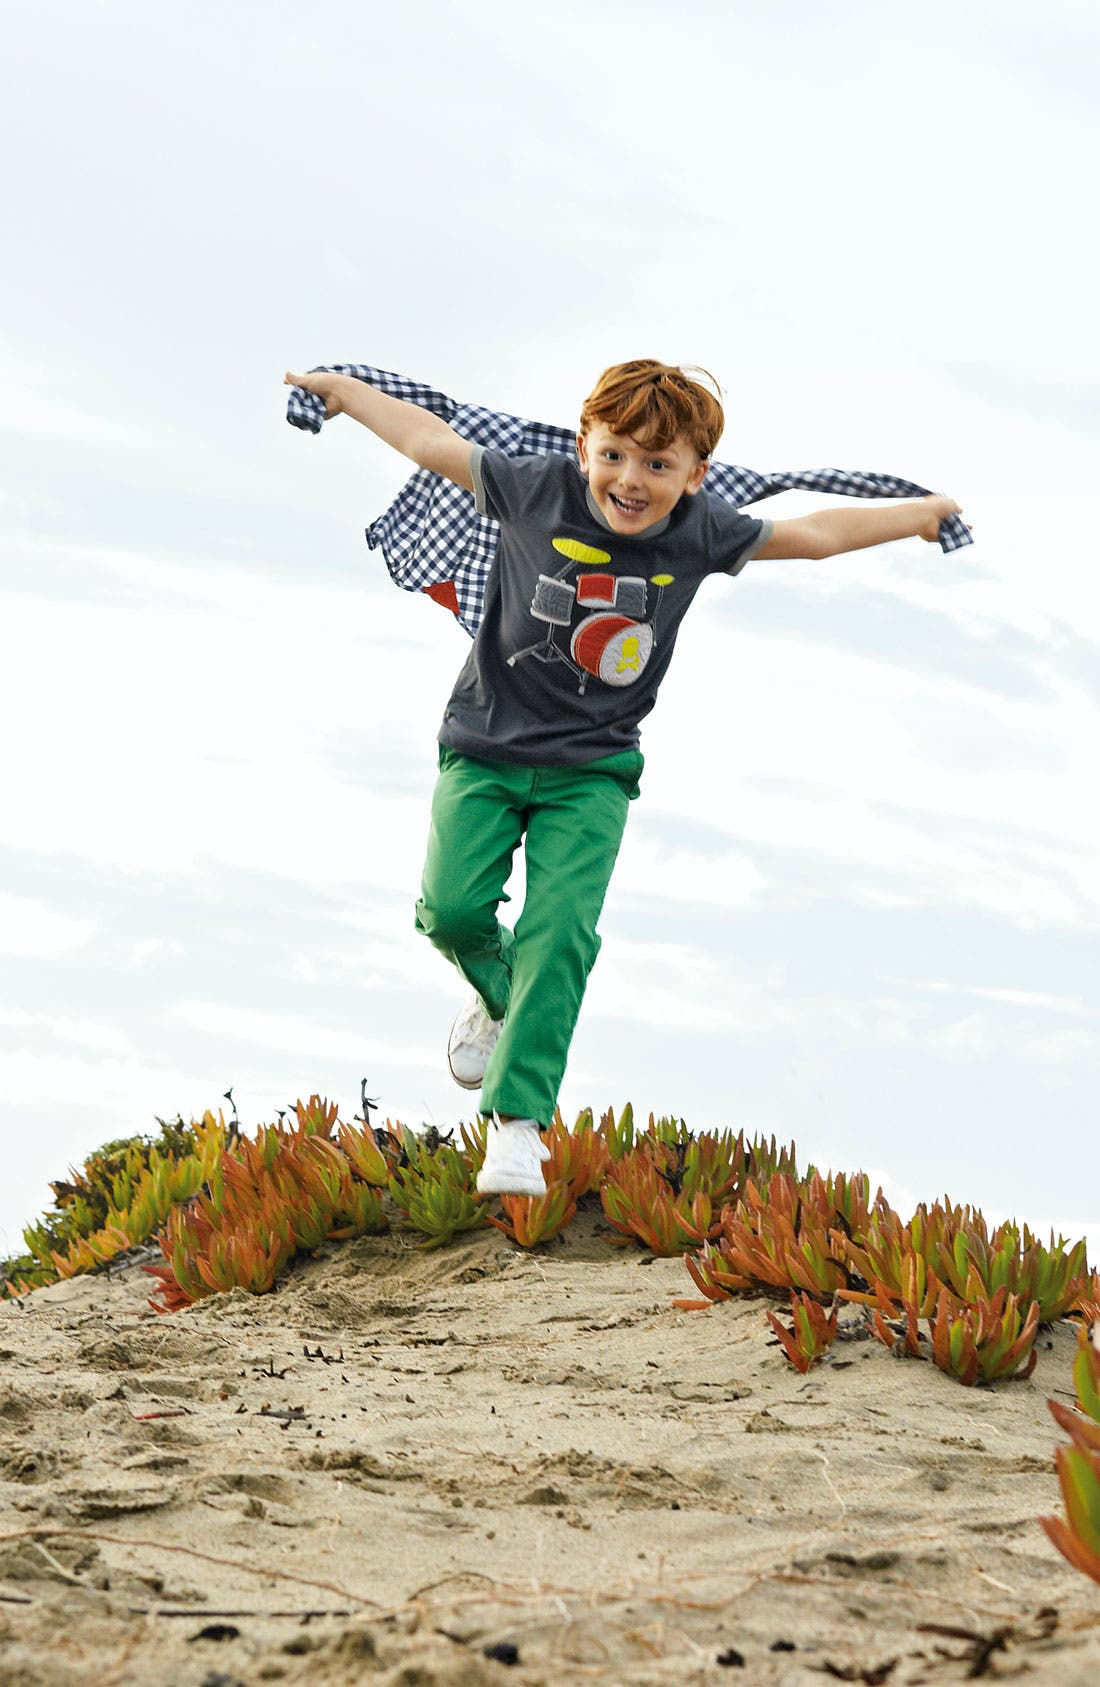 Alternate Image 1 Selected - Mini Boden T-Shirt, Woven Shirt & Chinos (Toddler, Little Boys & Big Boys)